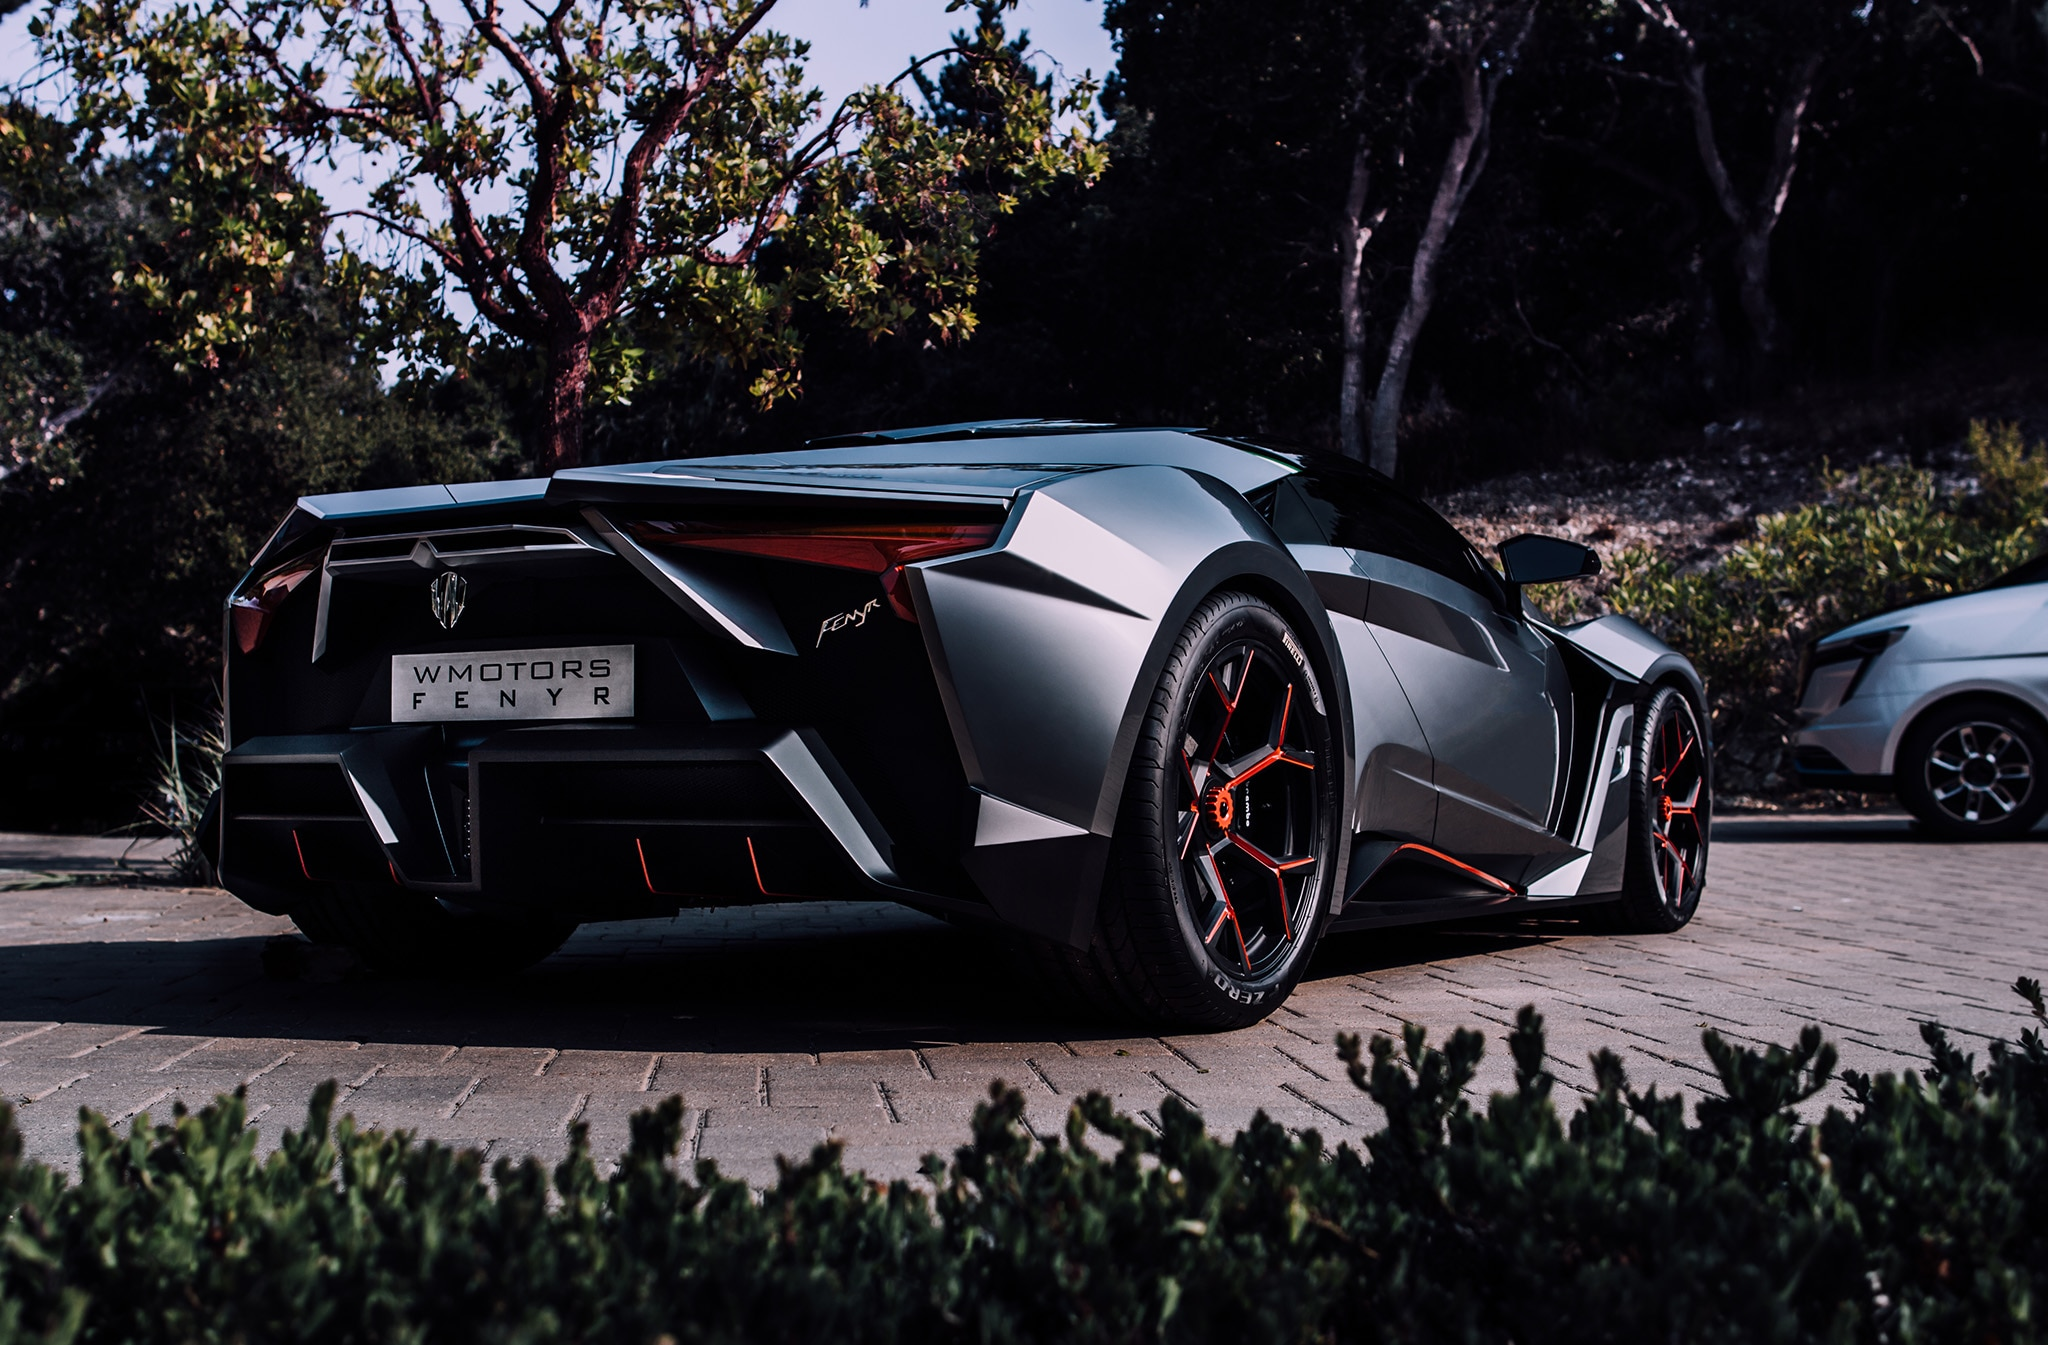 W Motors Previews Almost Production Ready Fenyr Supersport